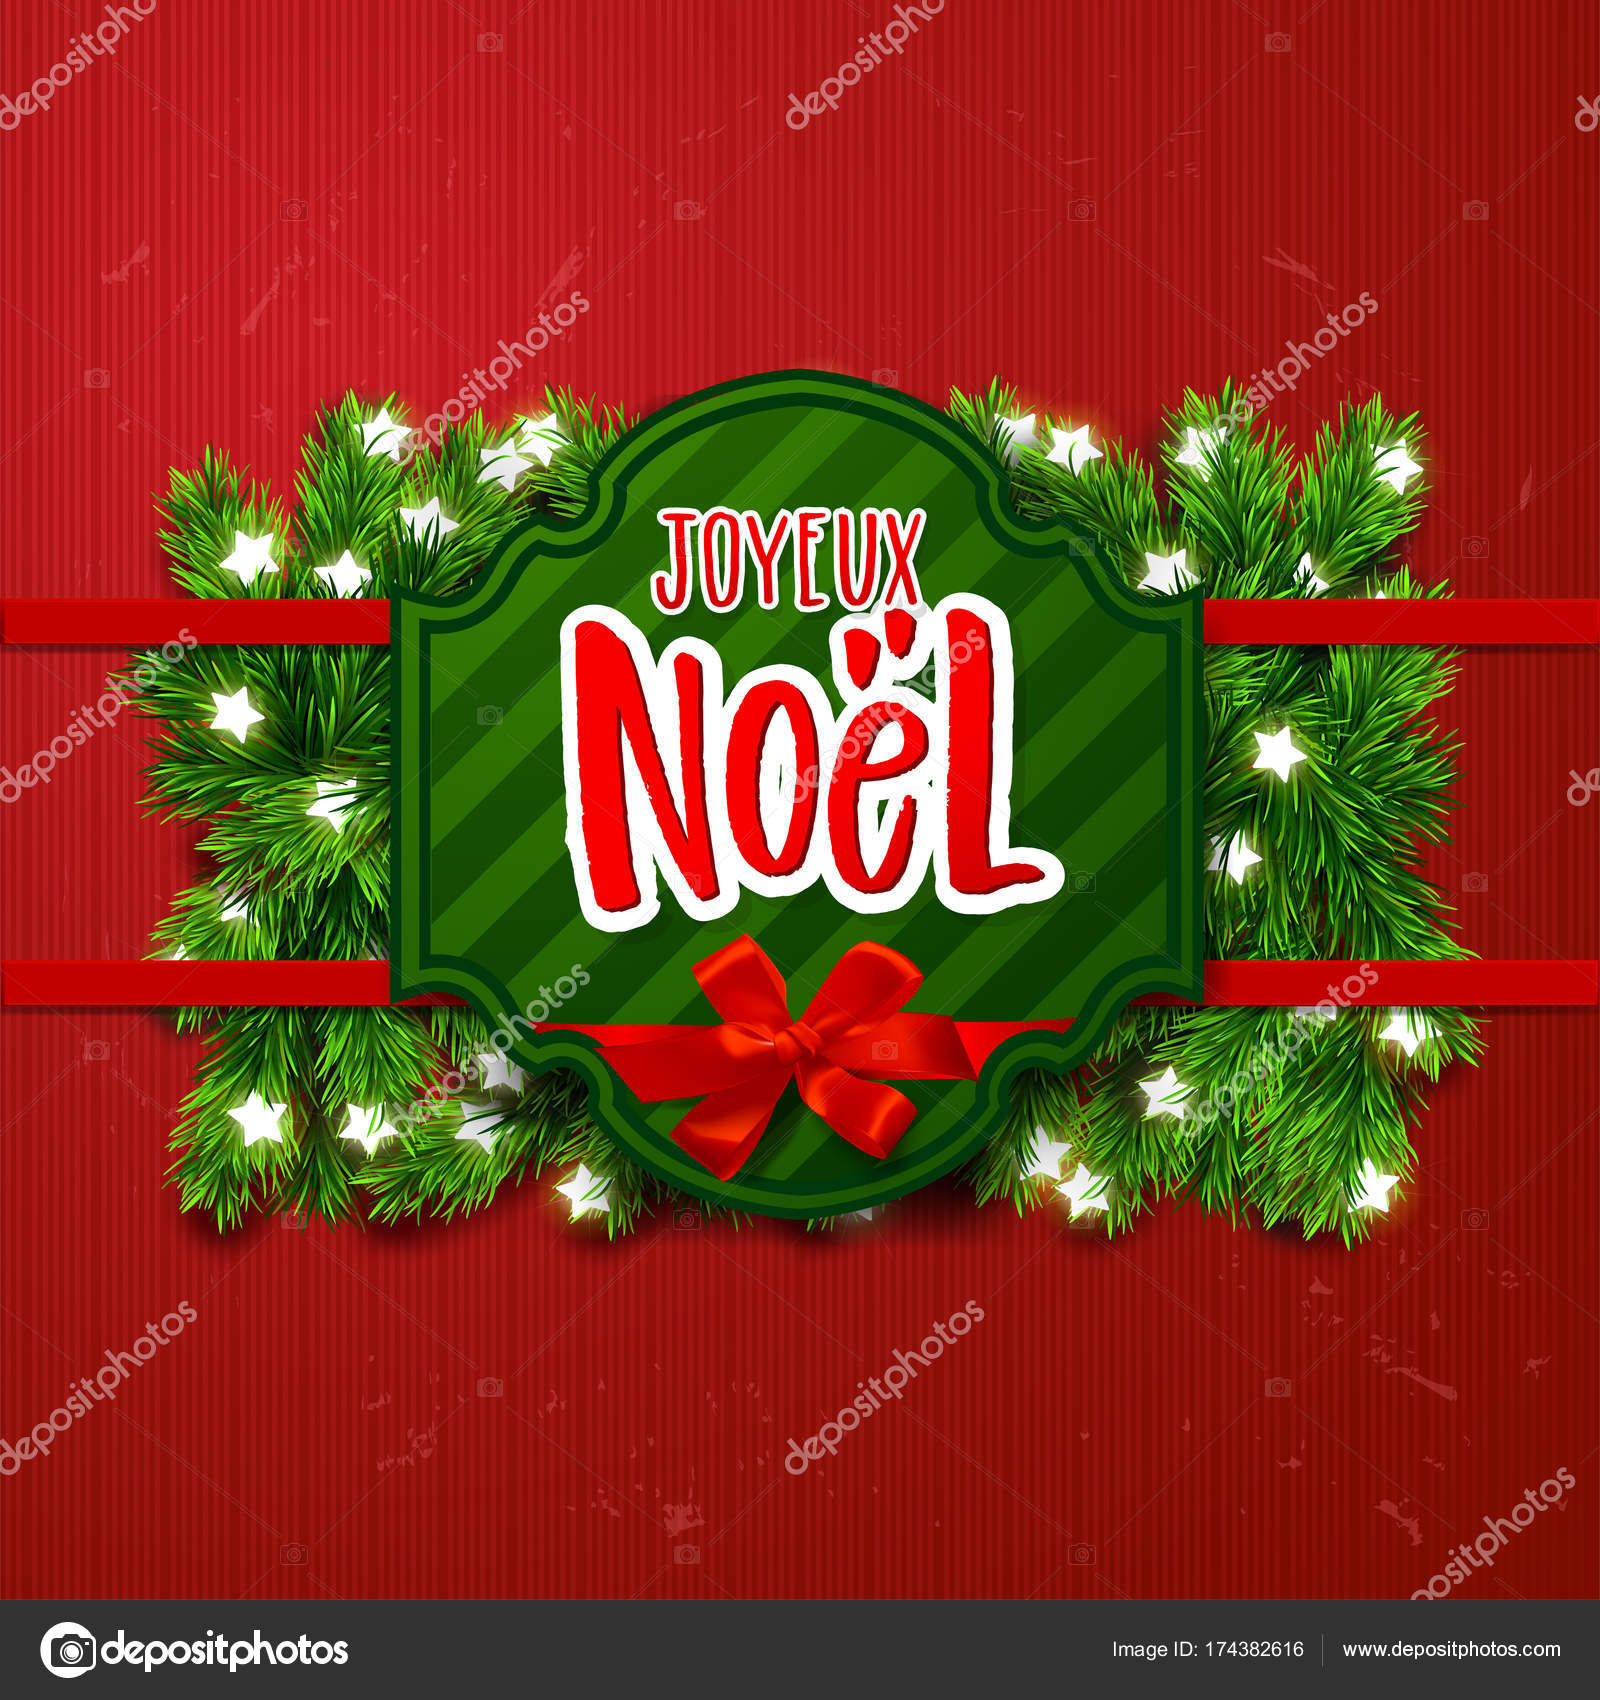 Merry Christmas Greeting Card With Greetings In French Language